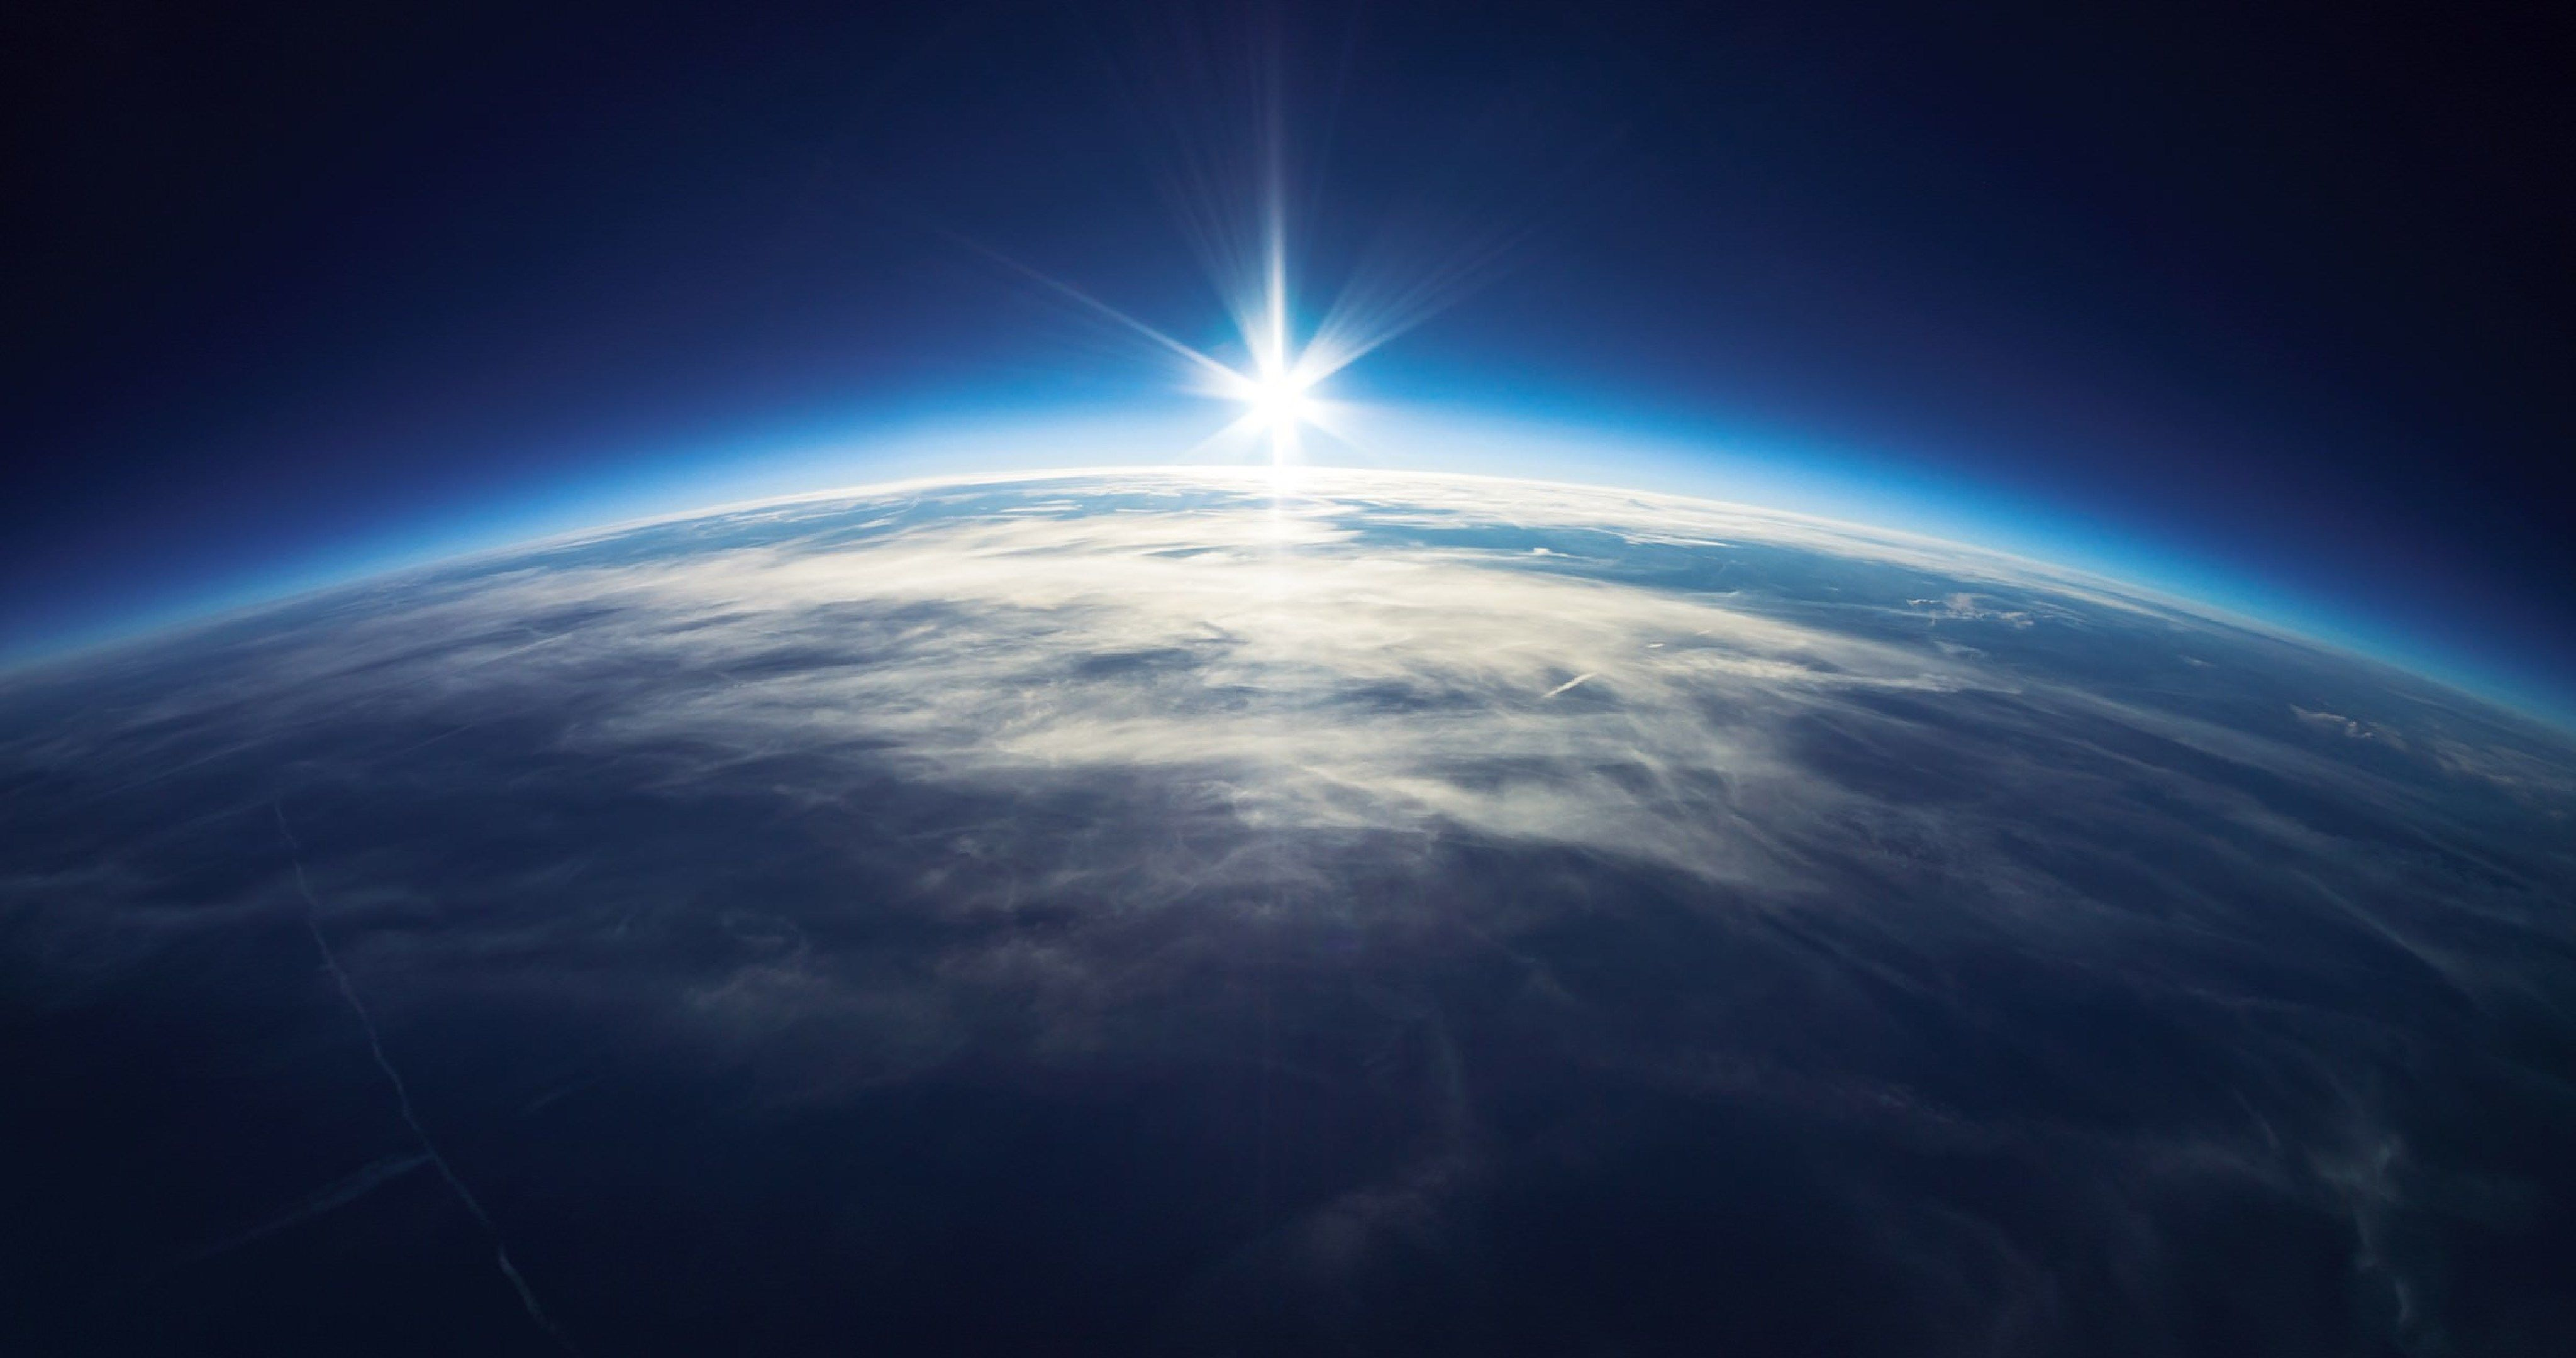 4k earth wallpapers top free 4k earth backgrounds wallpaperaccess - 4096x2160 wallpaper ...